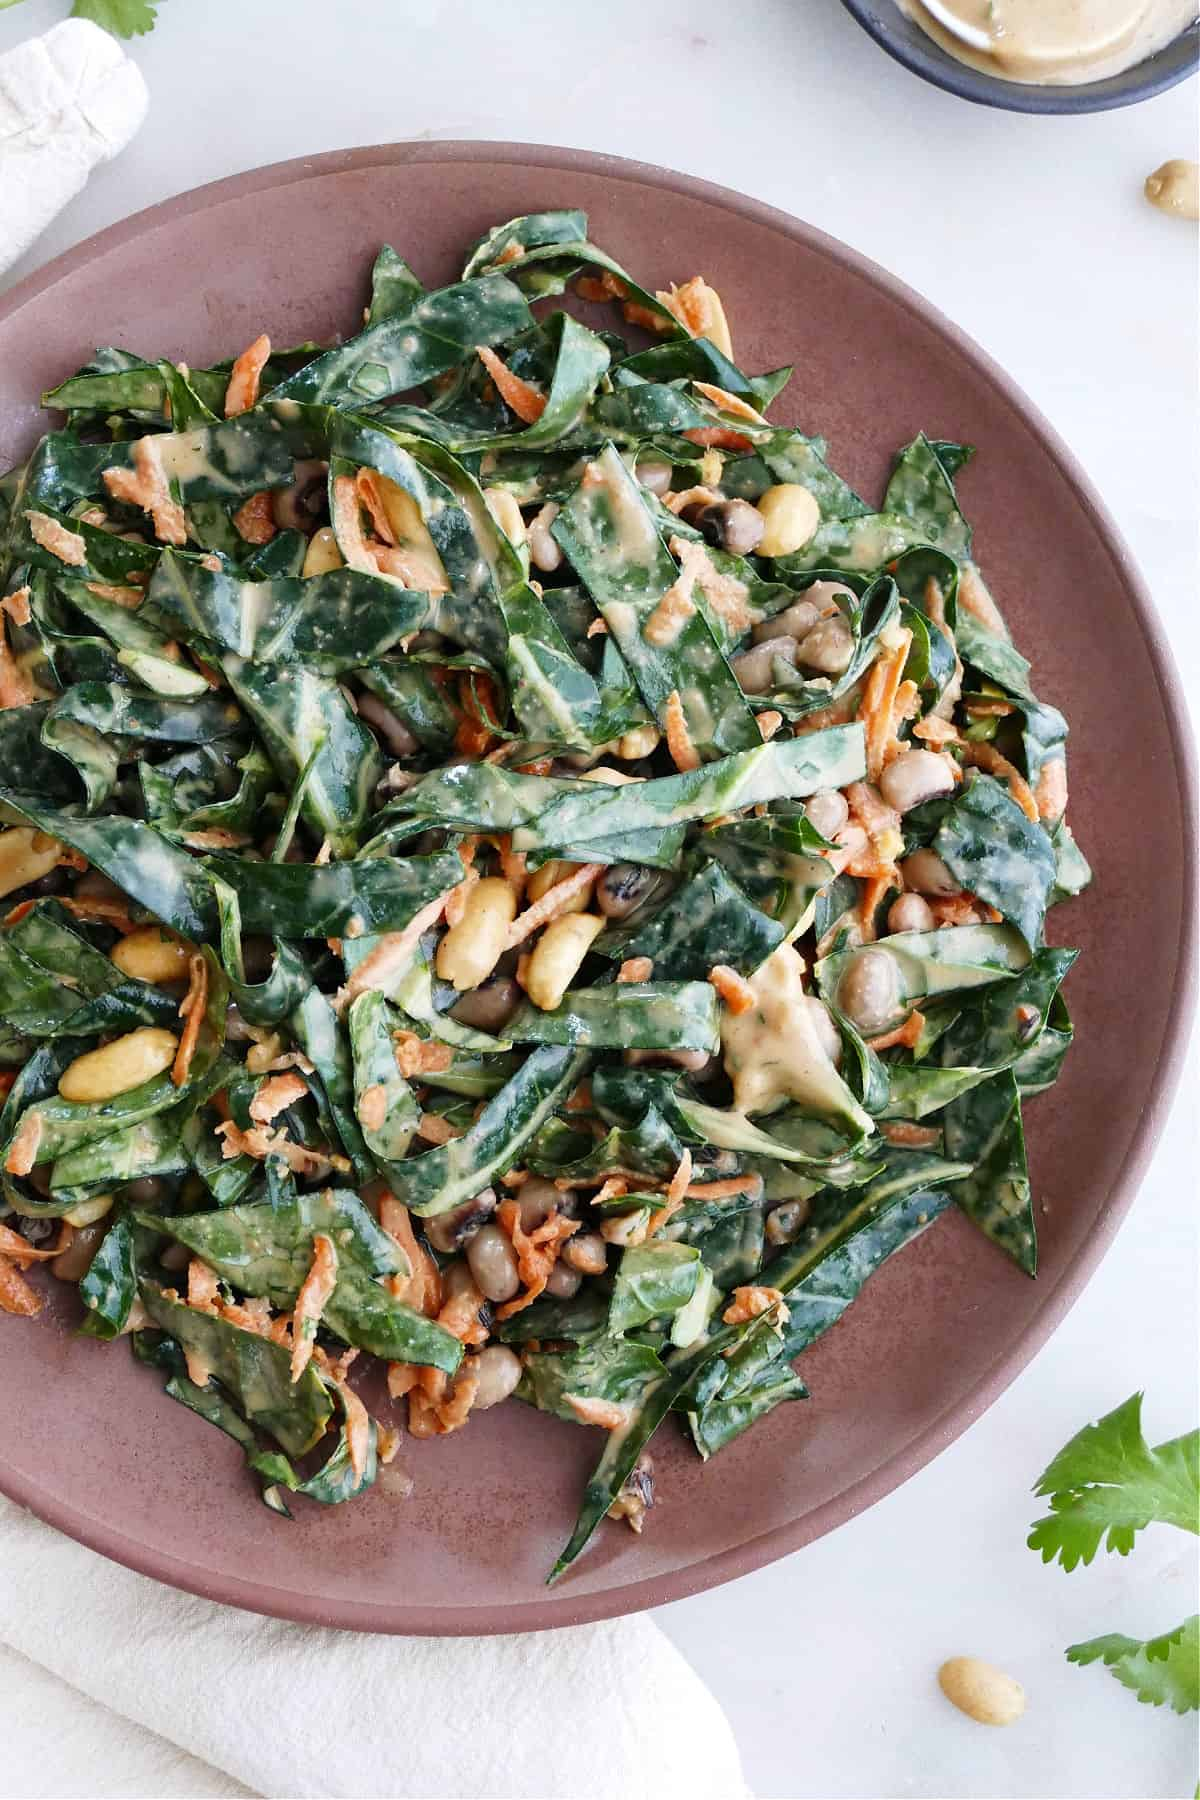 shredded collard greens, carrots, and peanuts with dressing on a brown serving dish